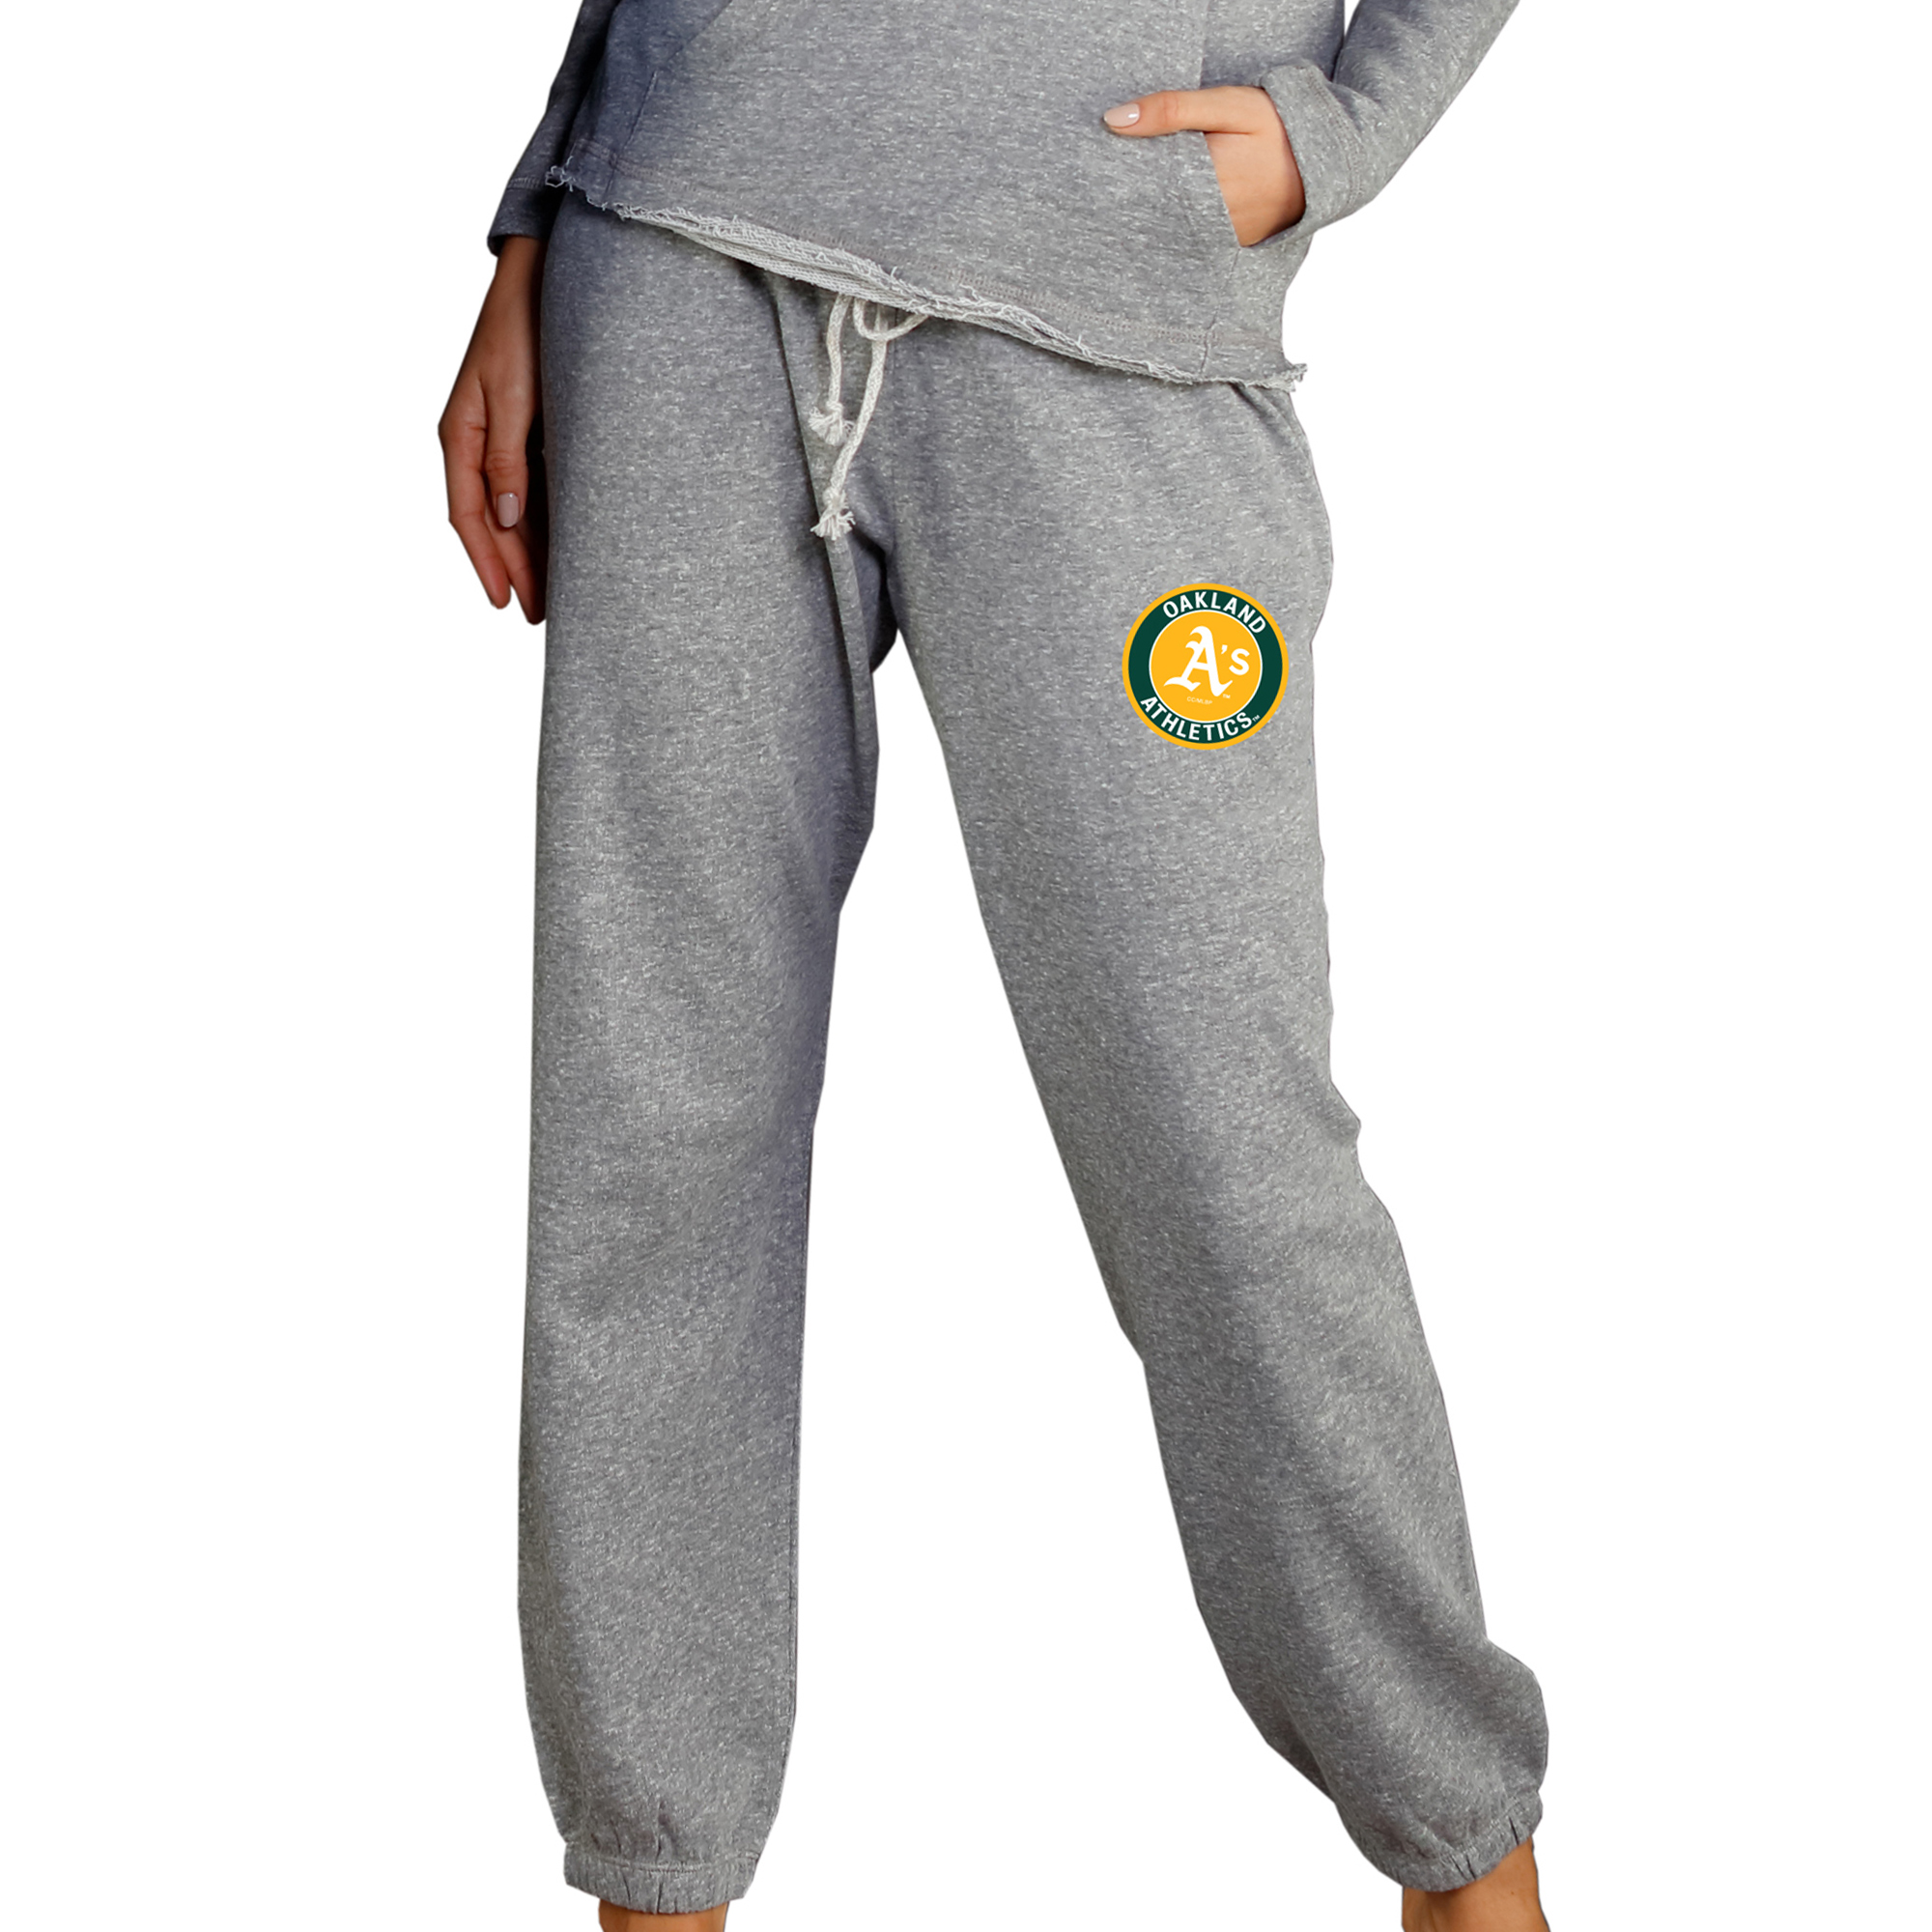 Oakland Athletics Concepts Sport Women's Mainstream Knit Pants - Gray